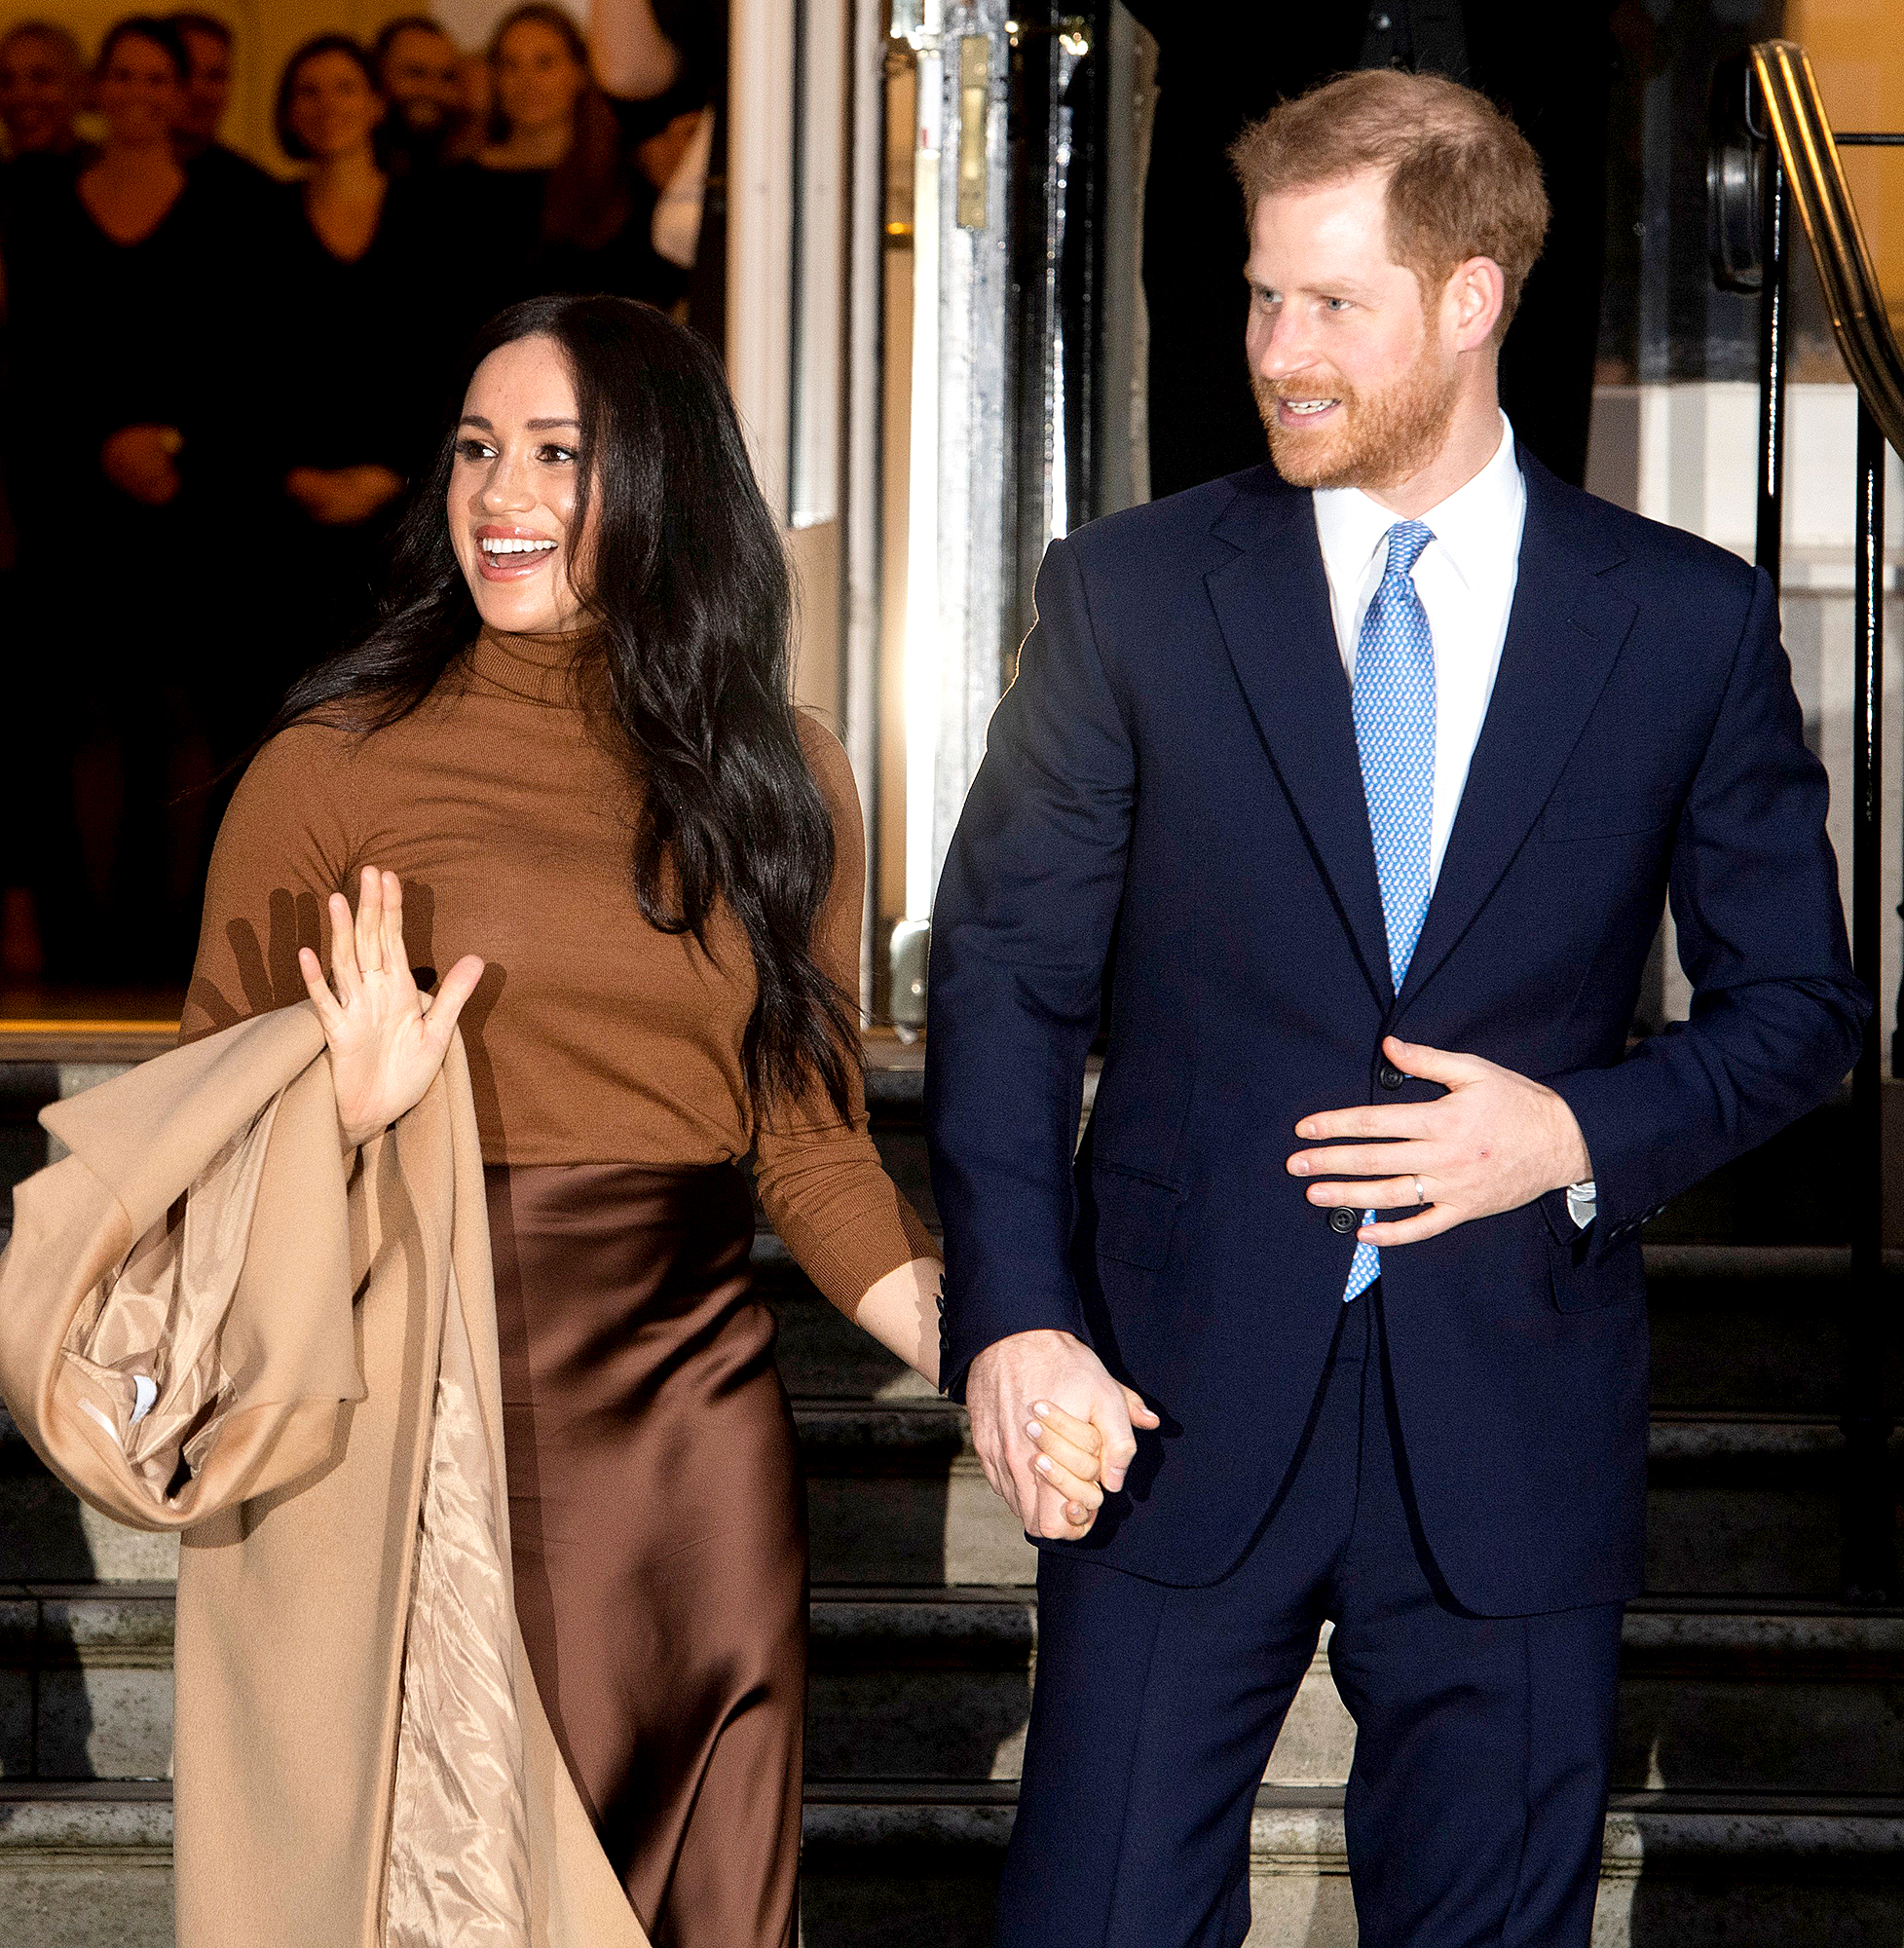 Prince-Harry-Is-'Desperate'-to-Escape-Negativity-and-Start-Fresh